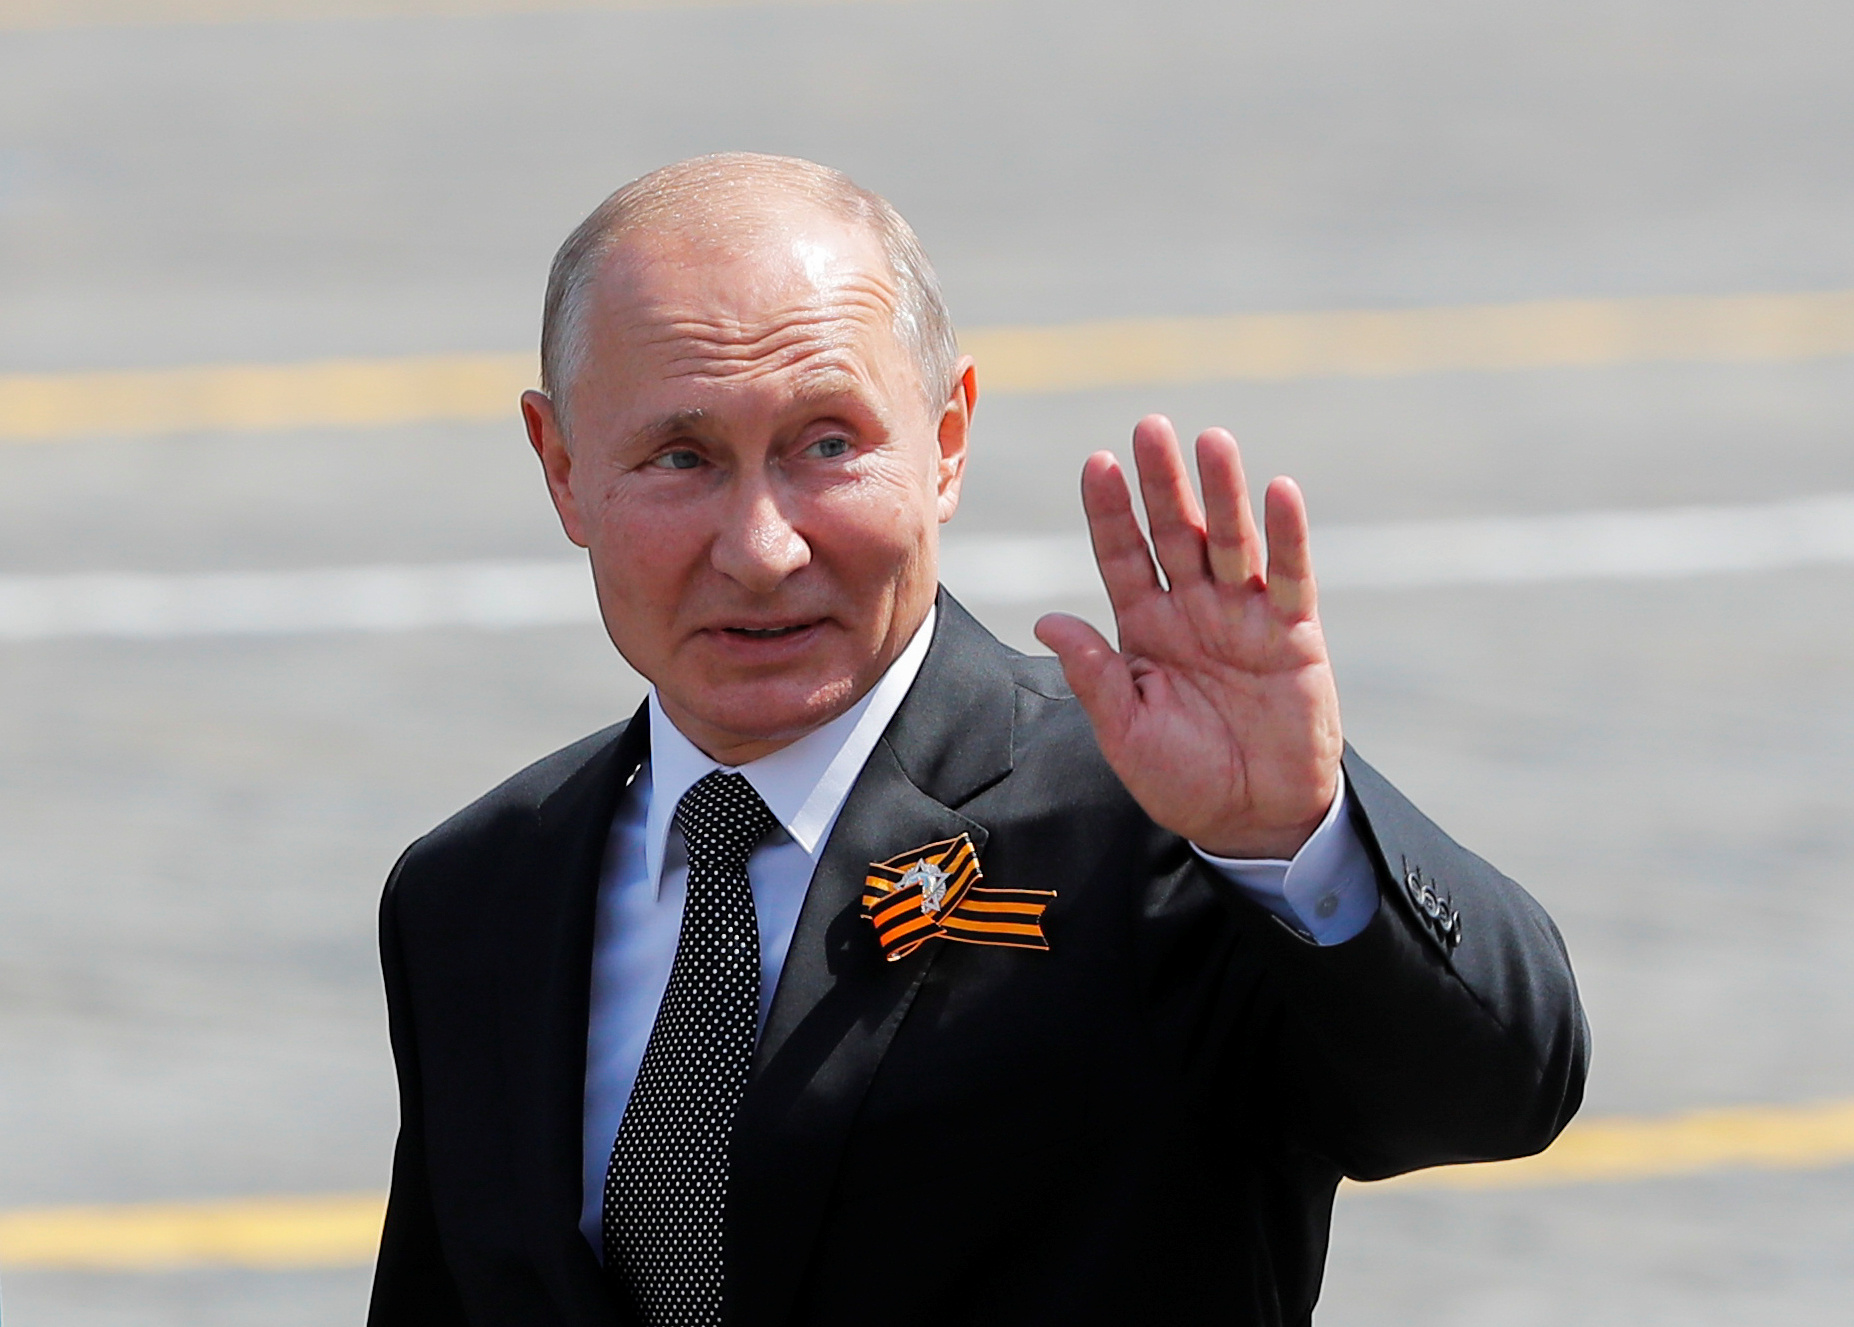 Russia's President Vladimir Putin waves as he leaves after the Victory Day Parade in Red Square in Moscow, Russia June 24, 2020. REUTERS/Maxim Shemetov